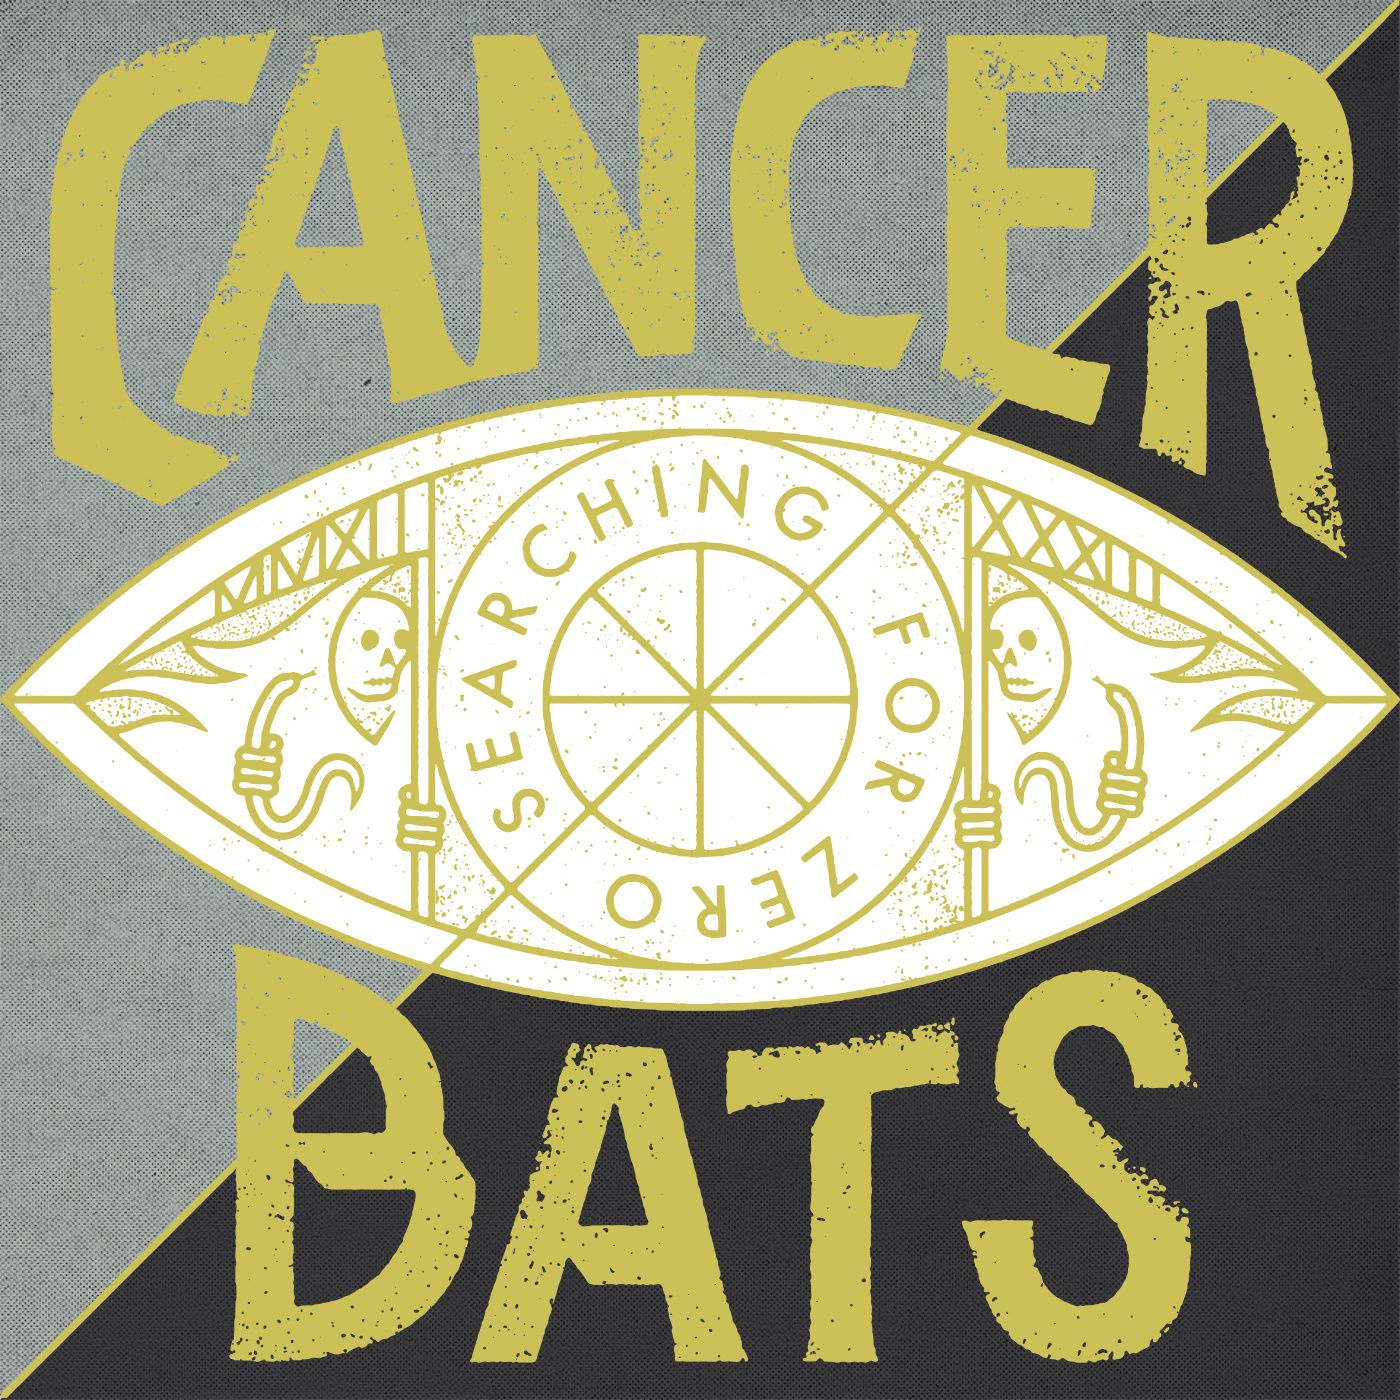 """CD review CANCER BATS """"Searching for zero"""""""